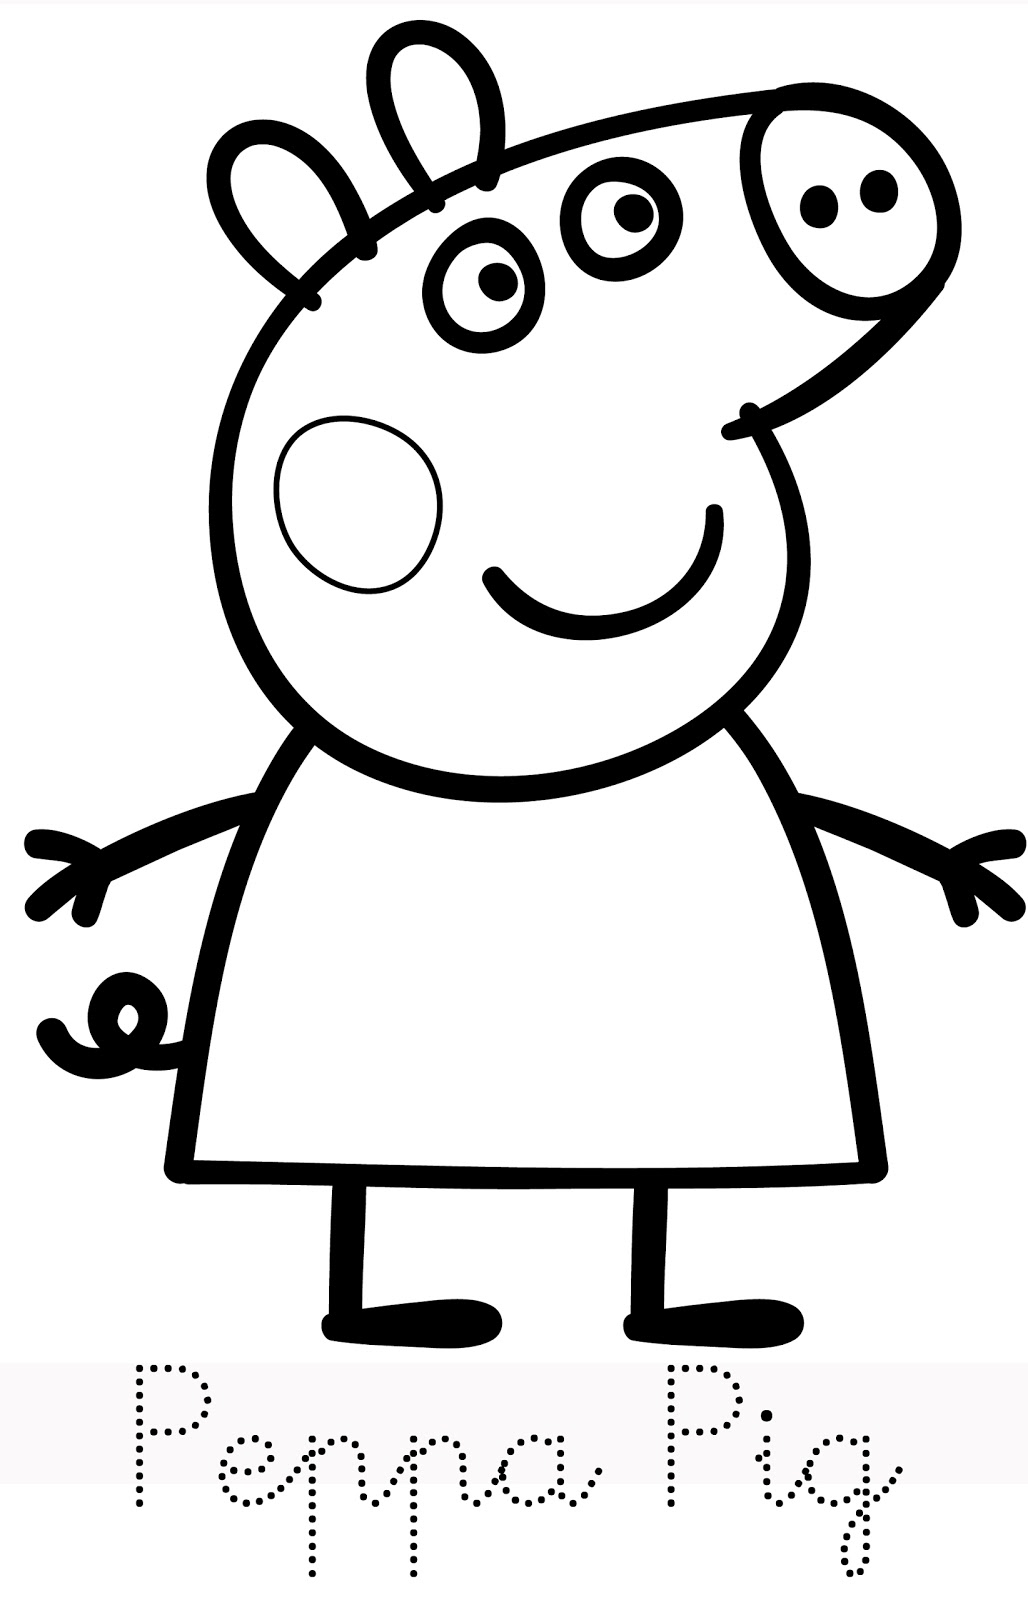 peppa pig cake template free - baby potatoes family of peppa pig